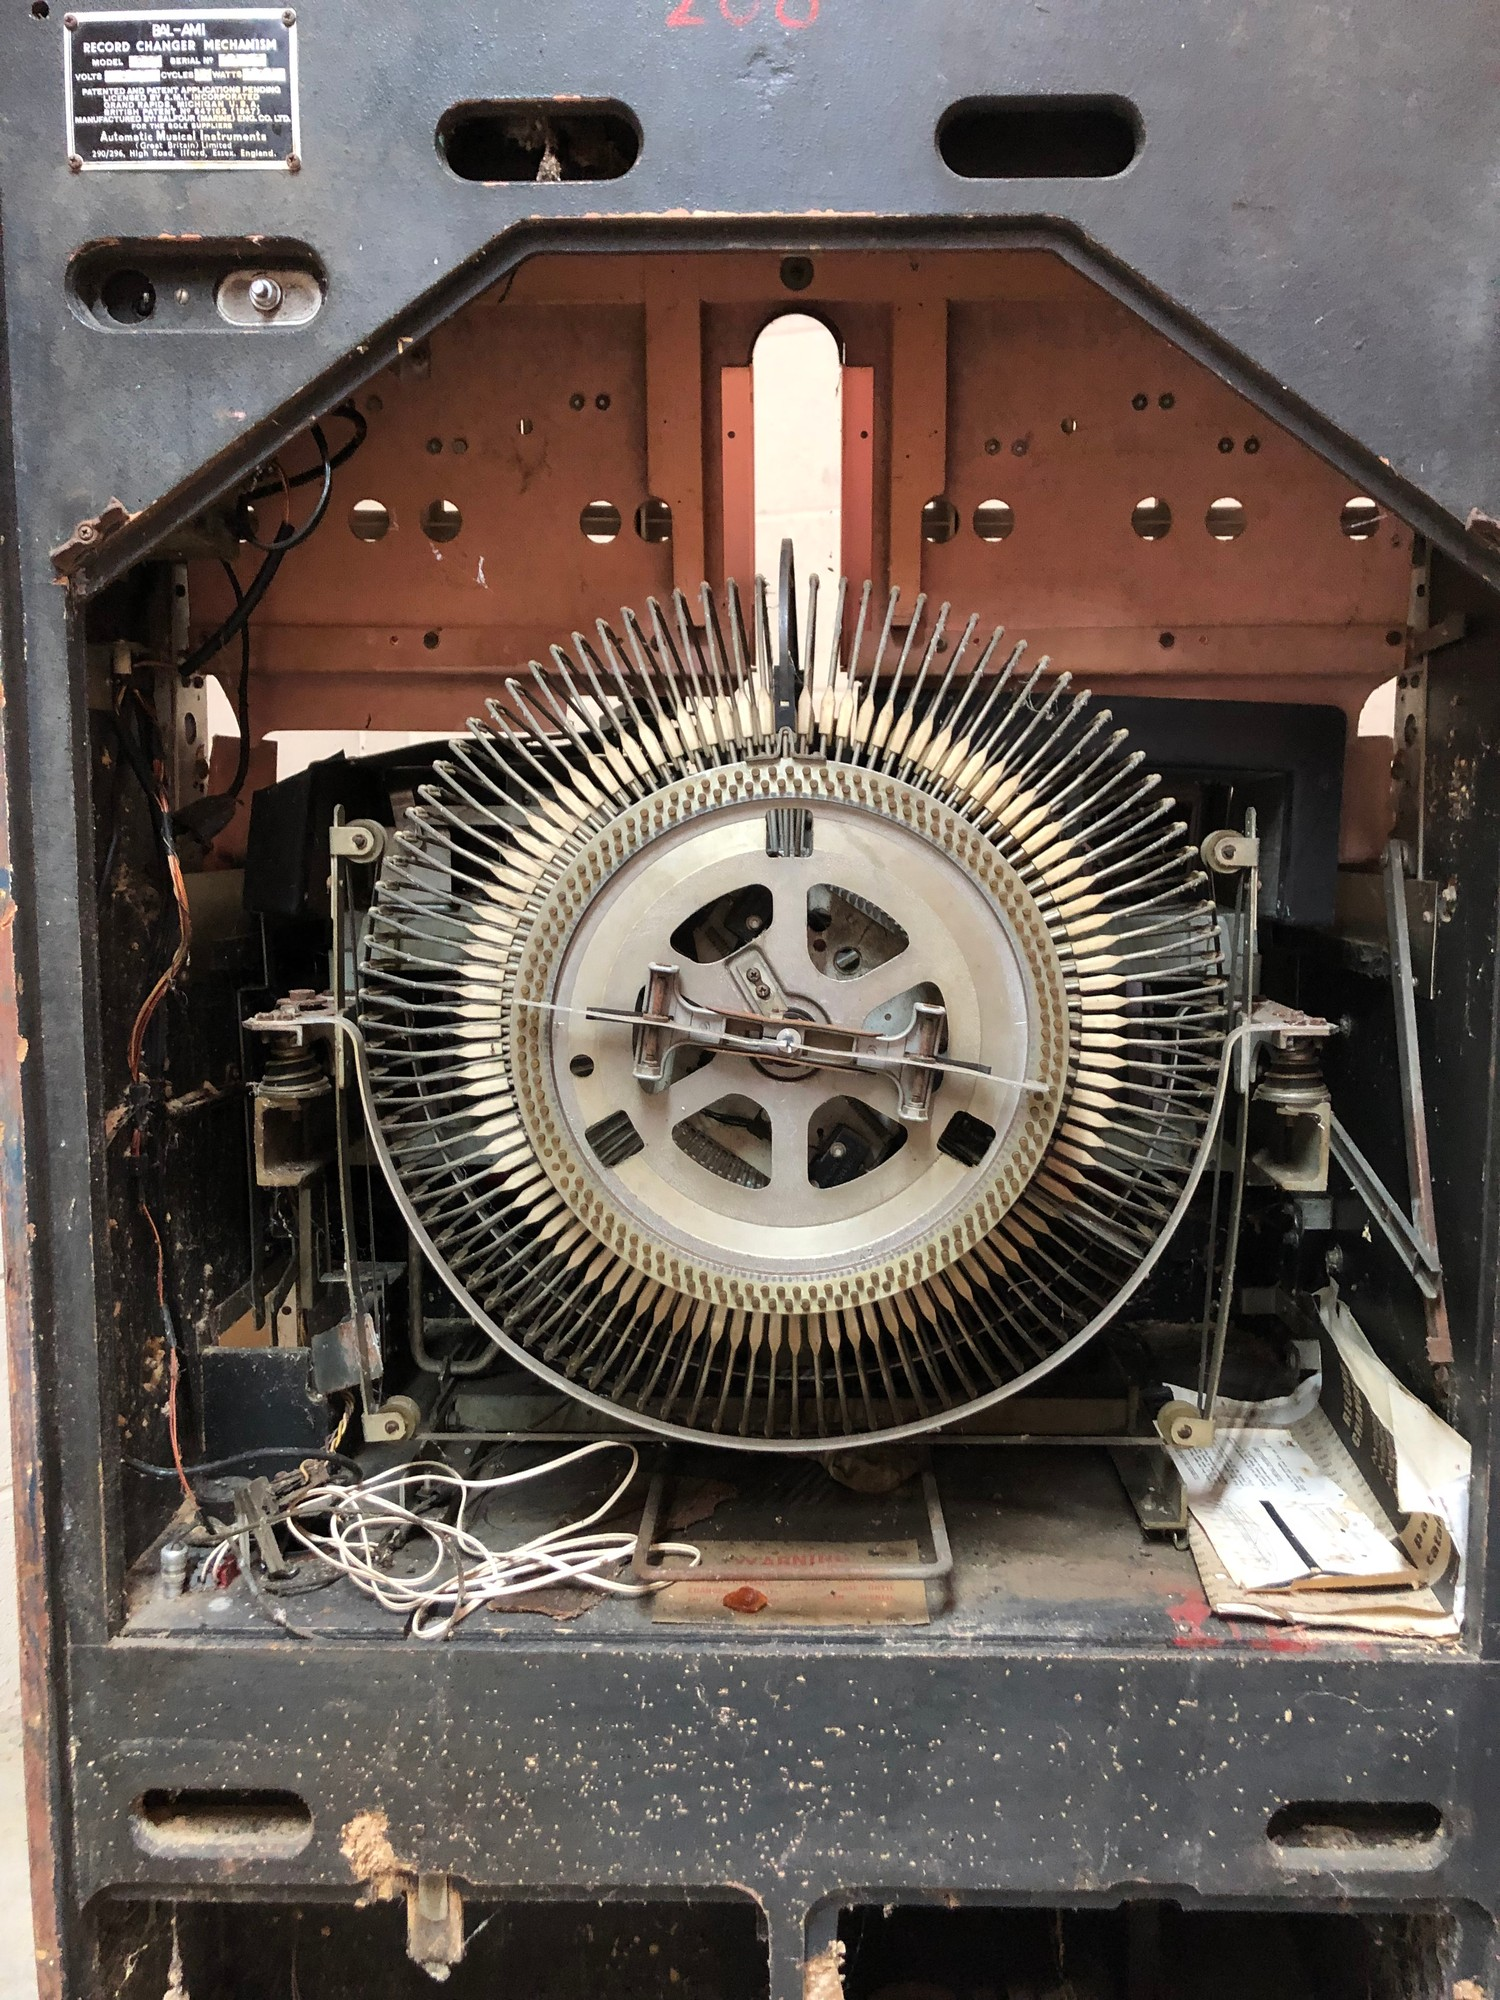 """Rare 1950s Bal-AMi 200 Jukebox in """"Barn Find"""" condition and in need of complete restoration, - Image 12 of 27"""